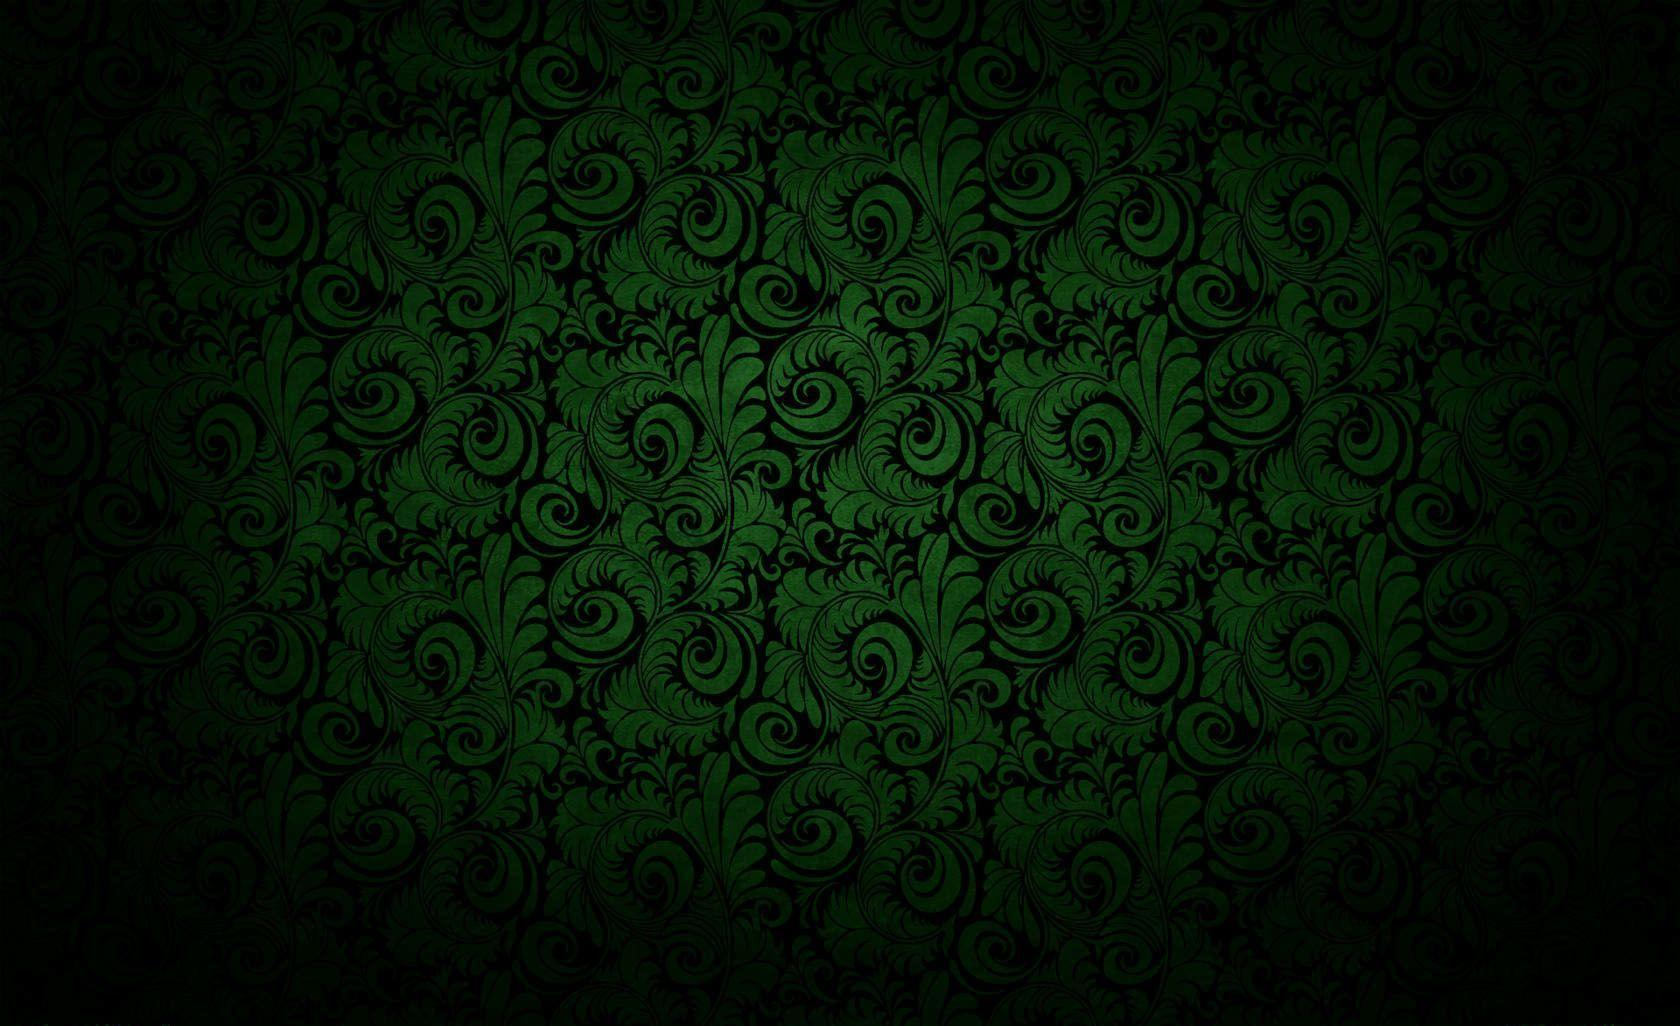 Black And Green Backgrounds - Wallpaper CaveBlack And Green Backgrounds